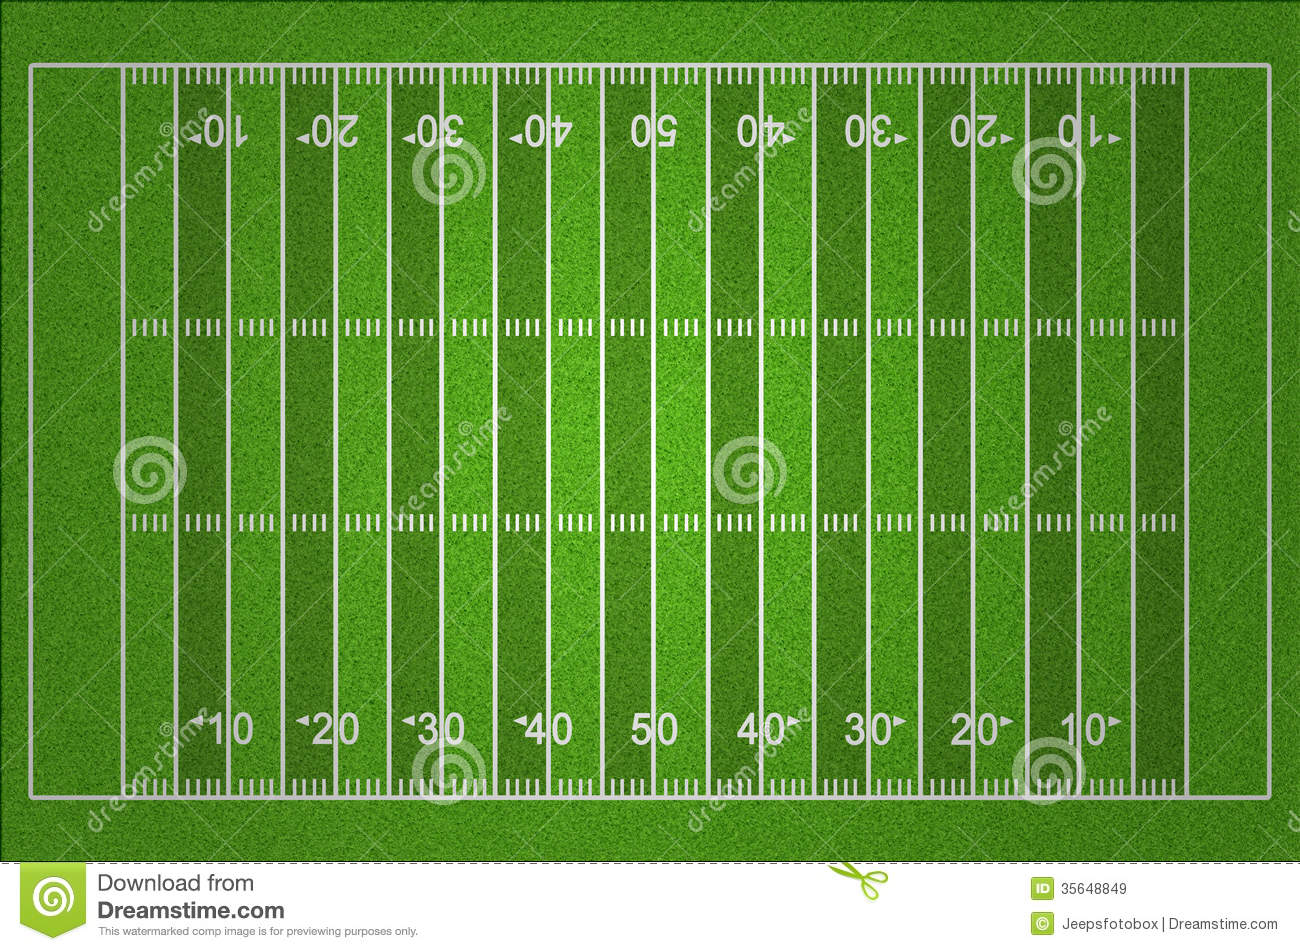 Stock Photo Close Up White French Azerty  puter Keyboard Background Image56317474 in addition Schematic Drawing Of Industrial Design besides Audio Schematic Drawings furthermore Royalty Free Stock Images American Football Field Dark Light Grass Lines Illustration Image35648849 as well Stock Photo Please Stand Here Foot Sign Symbol Floor Retro Filter Effect Image51014669. on design floor plan symbol for audio